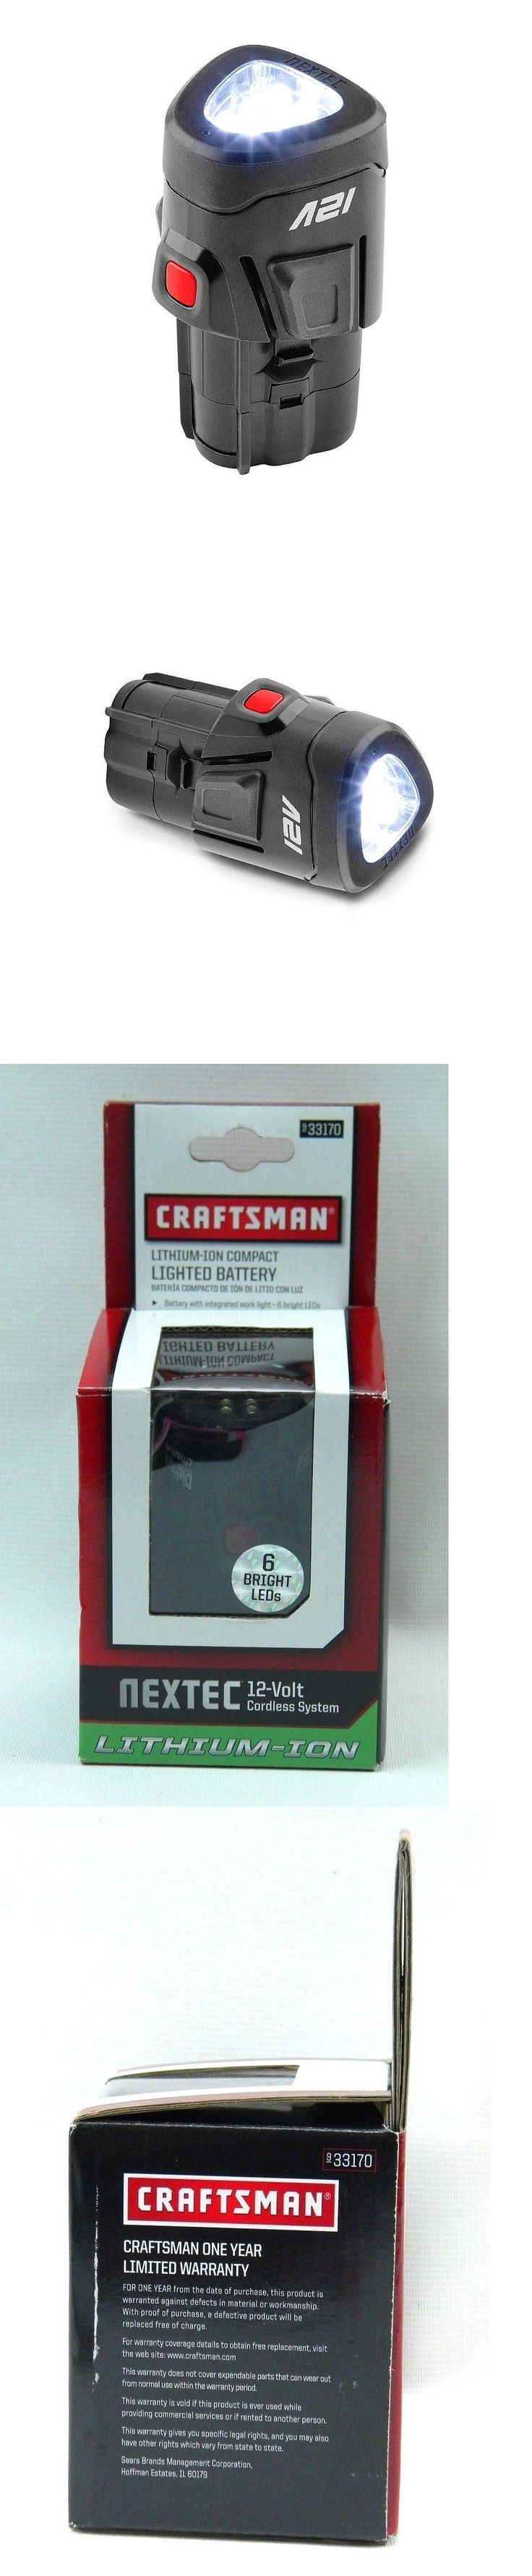 Batteries and Chargers 122840: Craftsman Lithium-Ion Compact Lighted Battery *Nextec 12 Volt* (9-33170) (D1) -> BUY IT NOW ONLY: $32.49 on eBay!